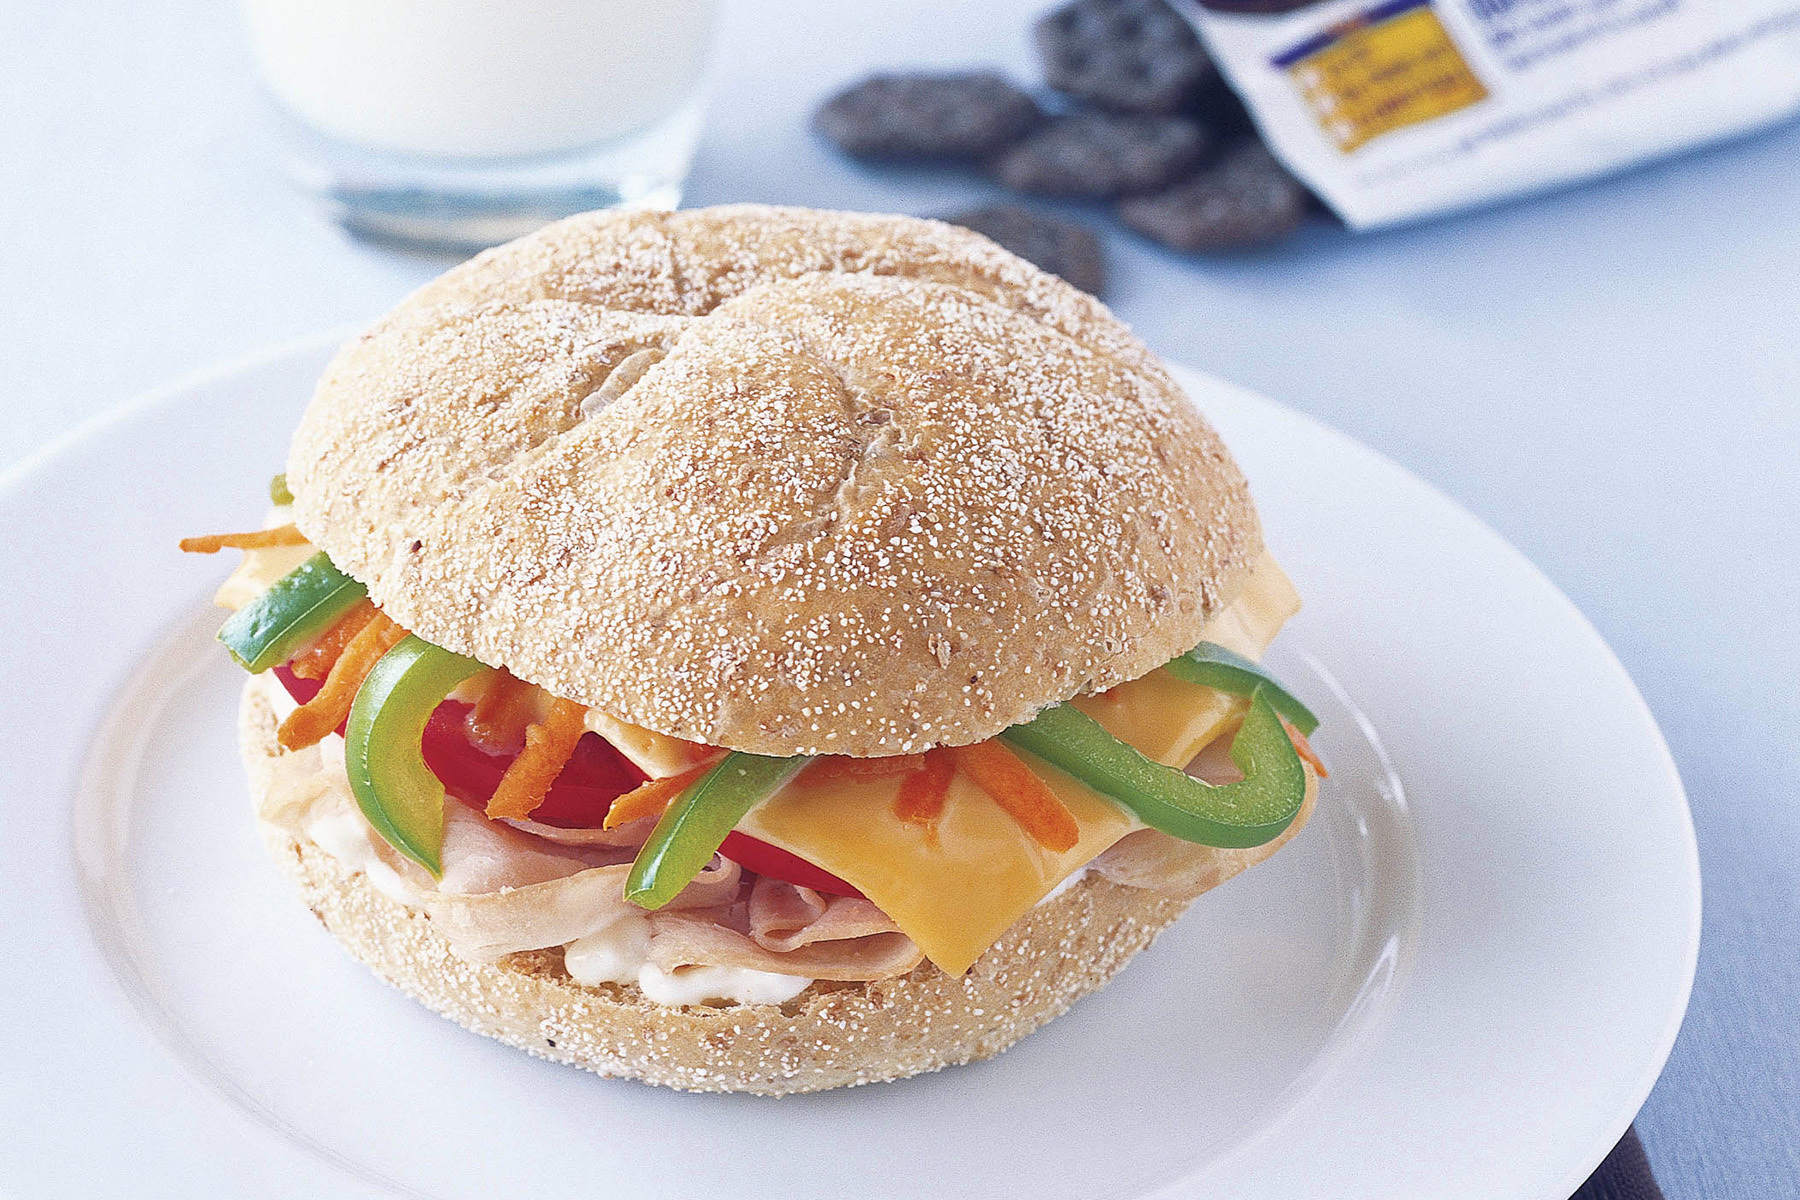 California Turkey & Vegetable Sandwich